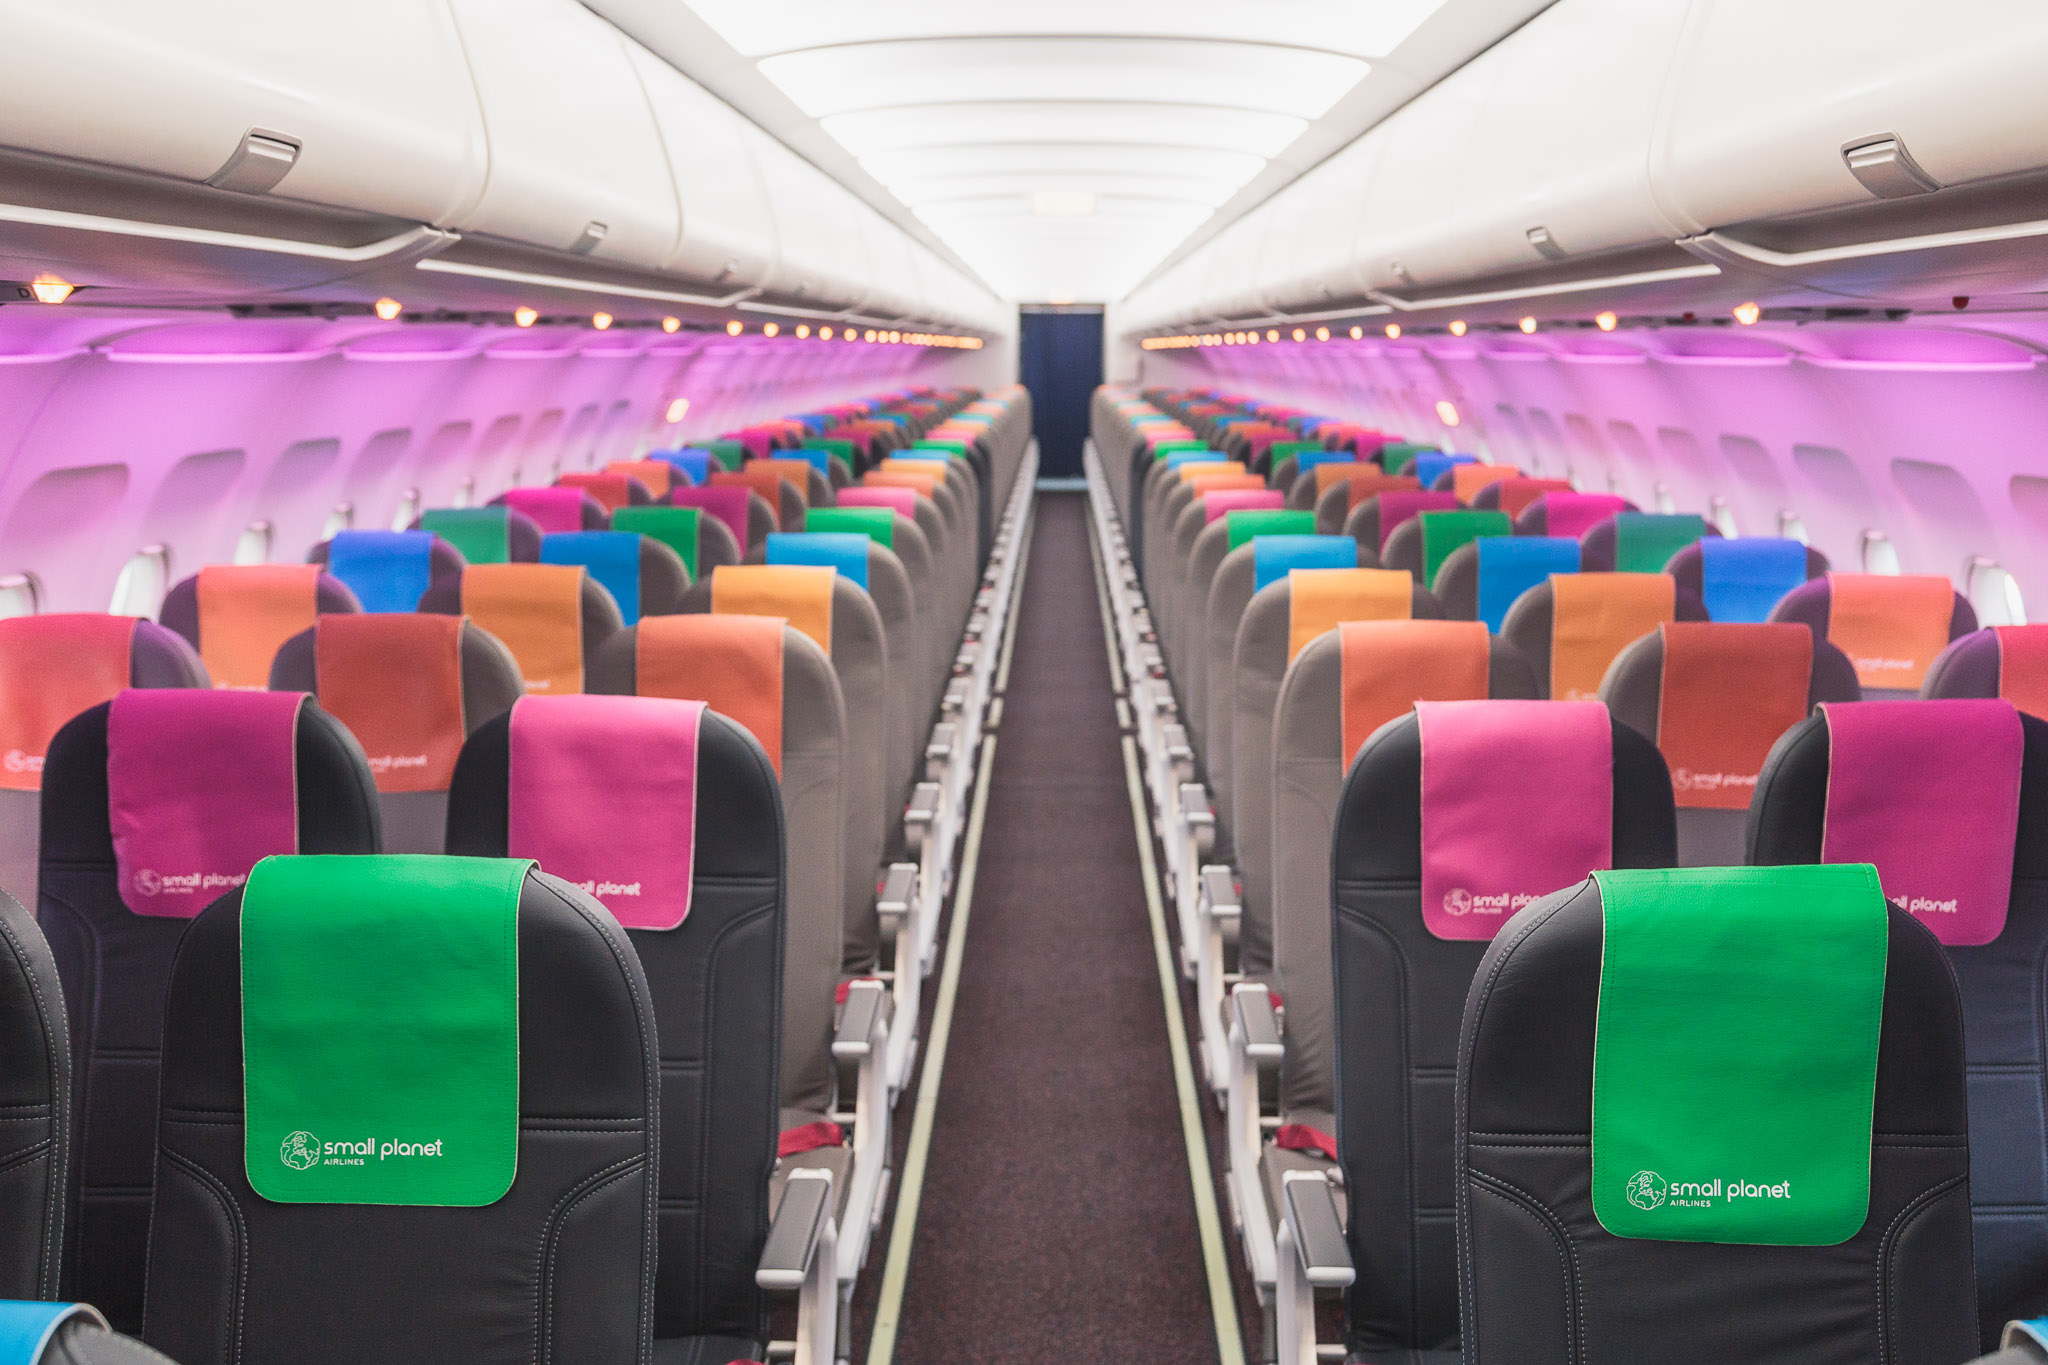 Small Planet Airlines displays many colours of LED lighting. Image: Small Planet Airlines